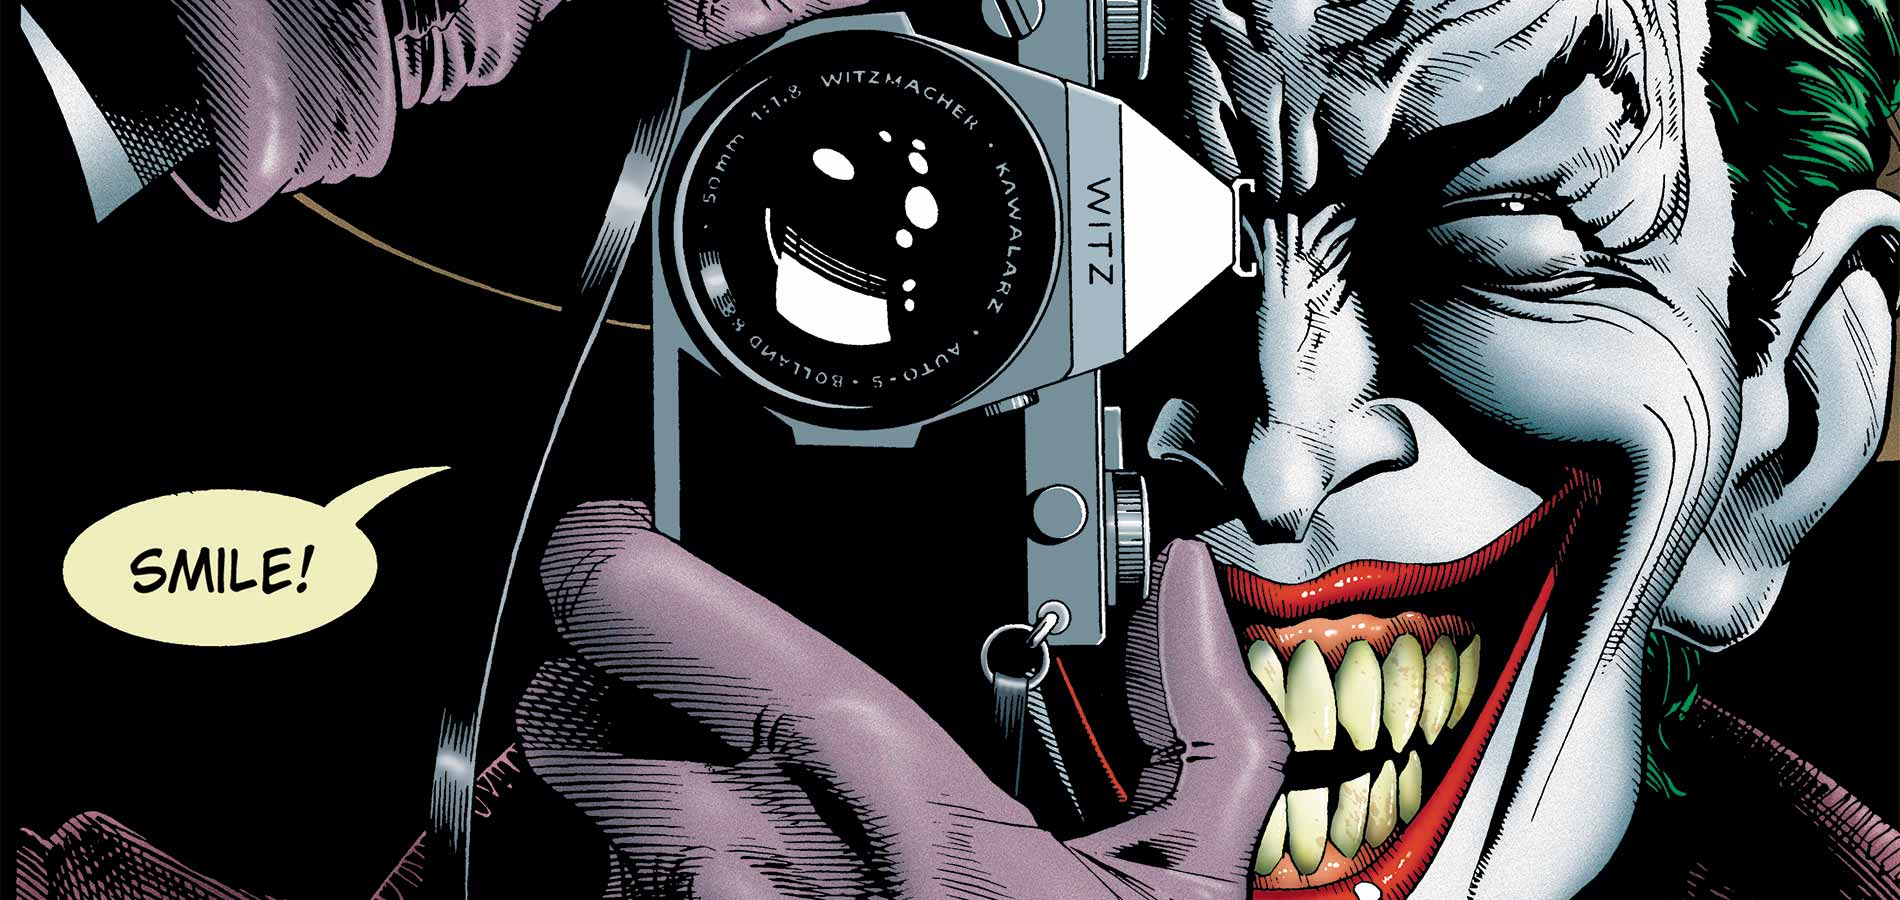 Batman killing joke.jpg